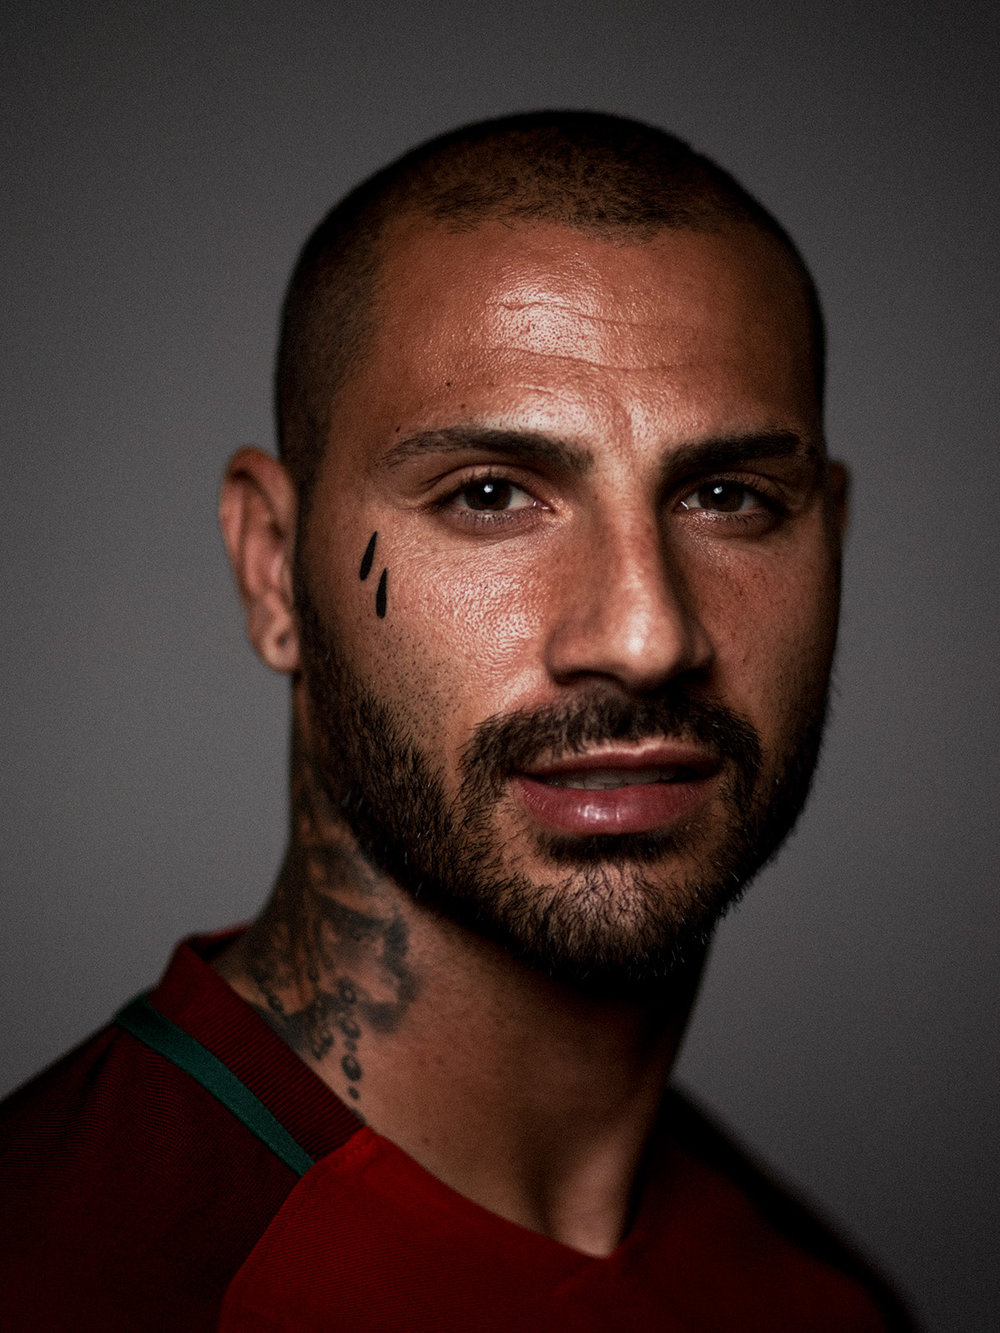 Ricardo Quaresma  of  Portugal  poses during the official  UEFA Euro Cup 2016   portrait  session on May 26, 2016 in Lisbon, Portugal. Midfielder Ricardo Quaresma (32) played a decissive role during the eight and quarterfinals of the UEFA Euro 2016. Portugal won the final match against France and gave their country a Eurocup for the firts time.